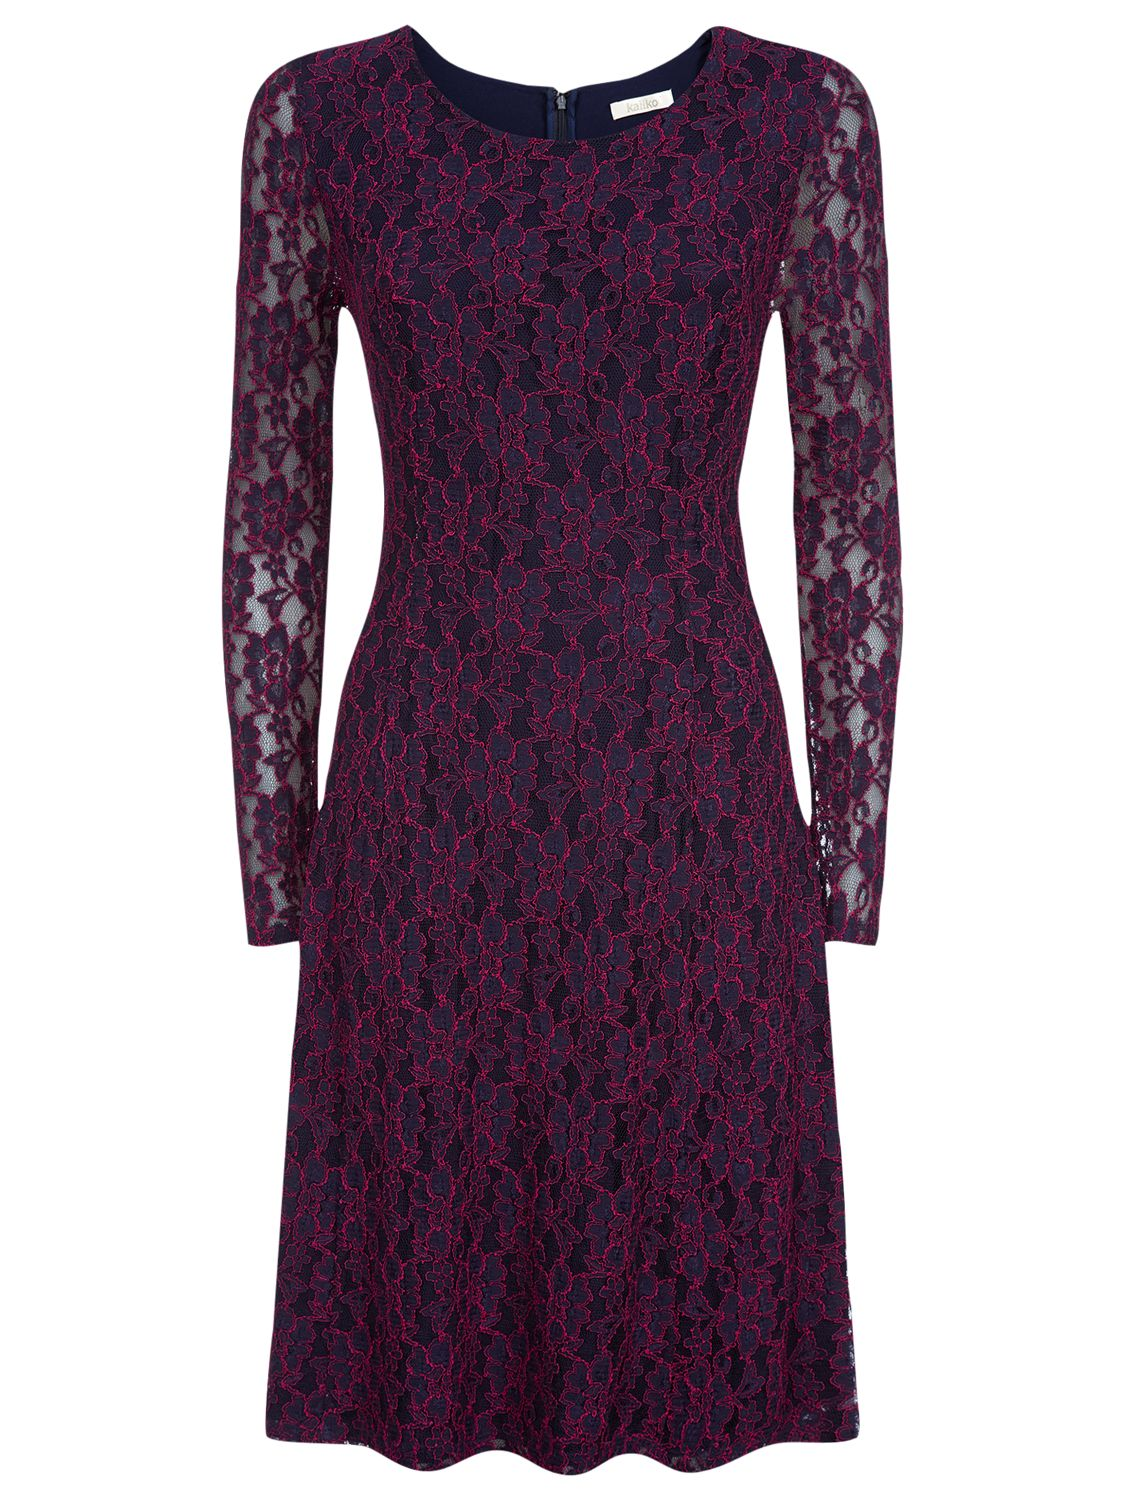 kaliko lace skater dress multi blue, kaliko, lace, skater, dress, multi, blue, clearance, womenswear offers, womens dresses offers, new years party offers, special offers, 20% off selected kaliko, women, plus size, womens dresses, 1619490